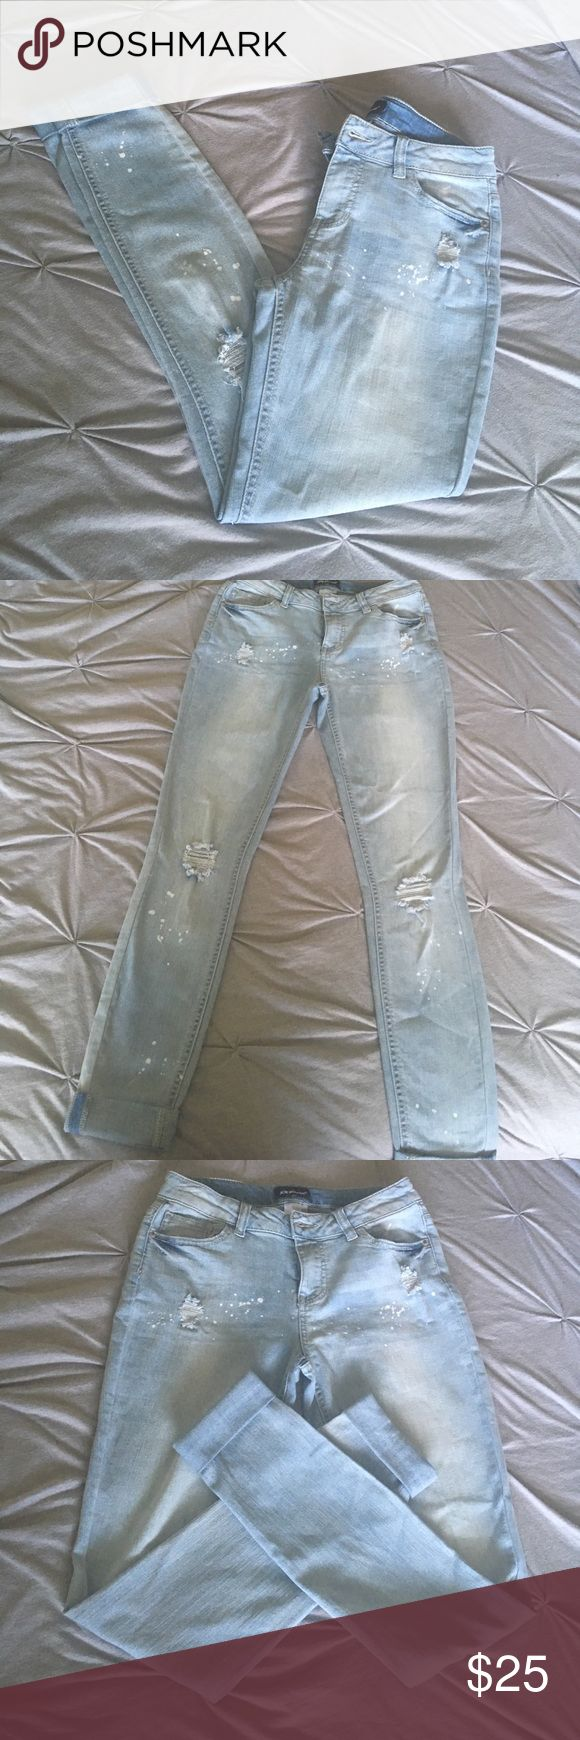 Joe boxer skinny ripped jeans Skinny ripped jeans by the brand Joe Boxer only wore twice... two small for me. GREAT condition. Look brand new with cute paint spot and ripped design. Can wear high waisted for my short girls and middle waist for my taller girls! You WANT these 😍 joe boxer Pants Skinny